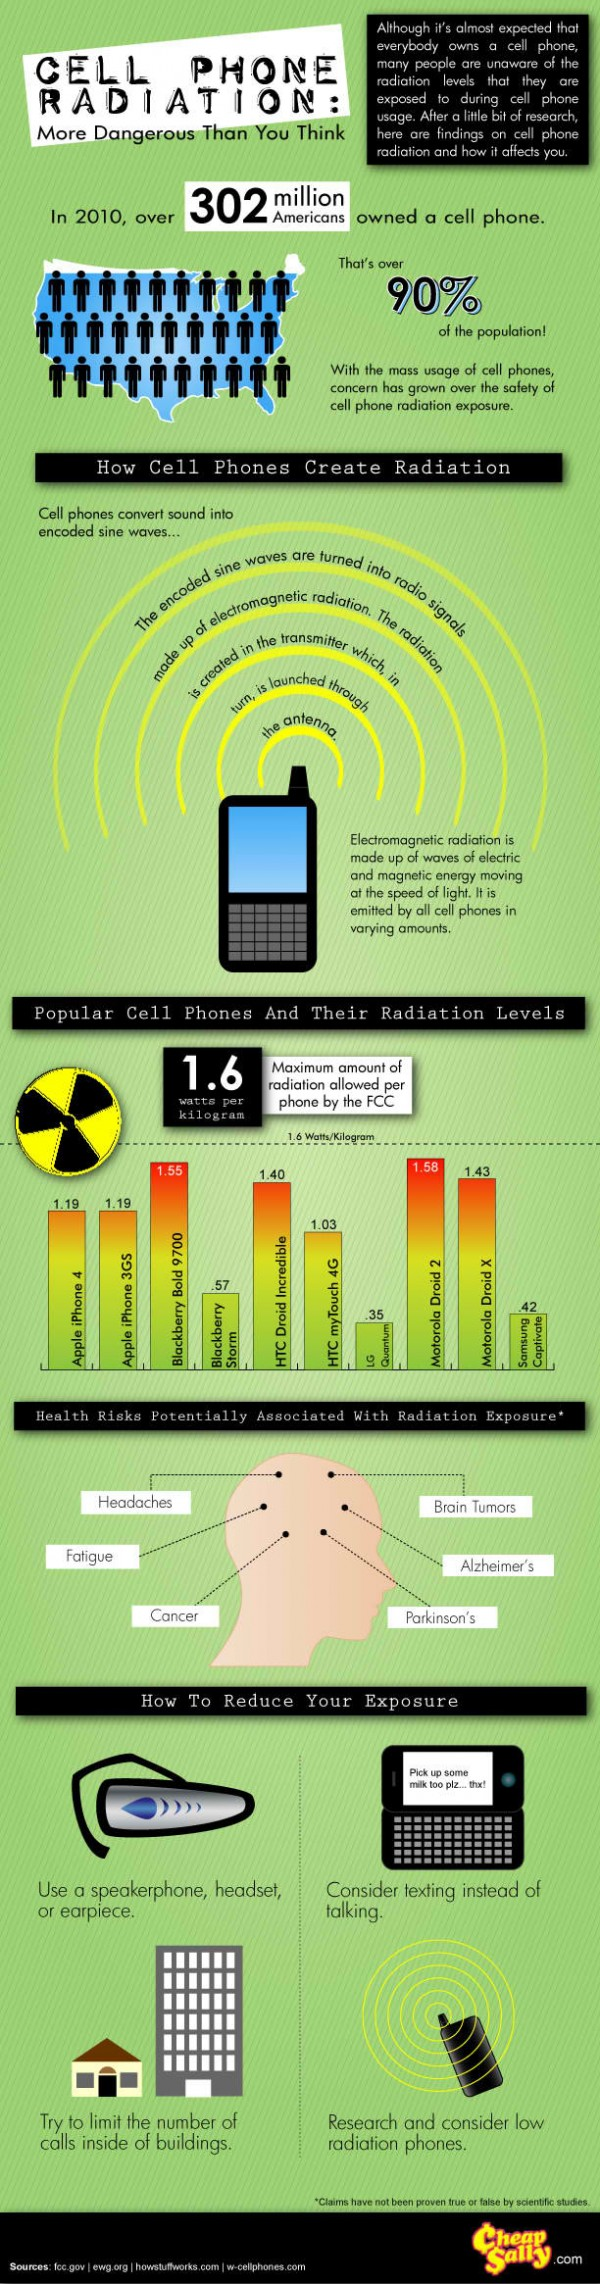 what type of radiation does a mobile phone use